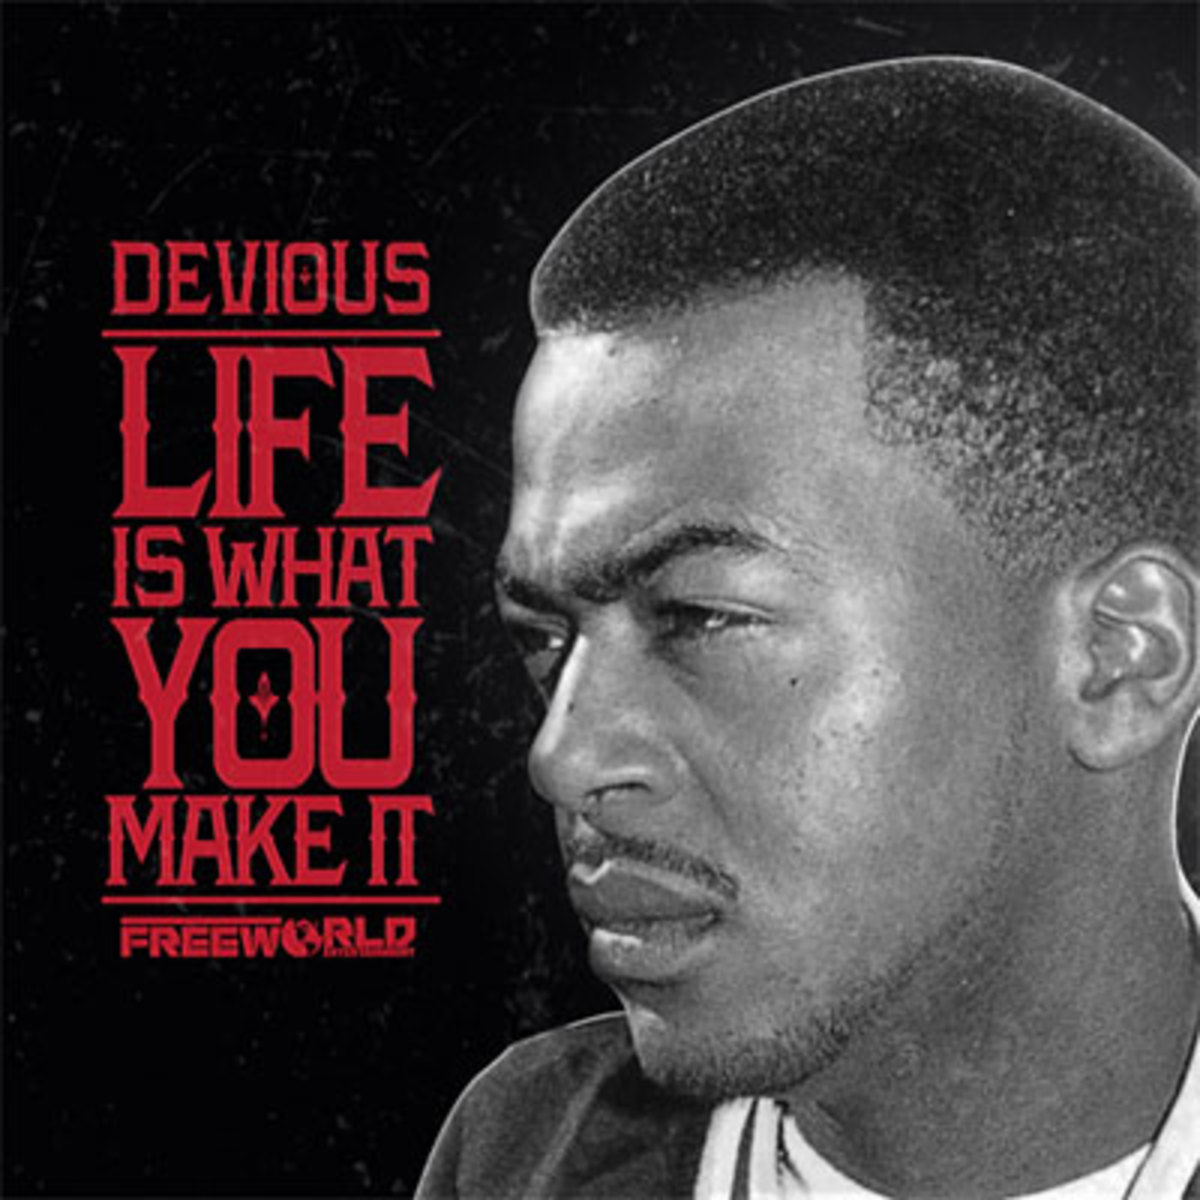 devious-lifeiswhat.jpg